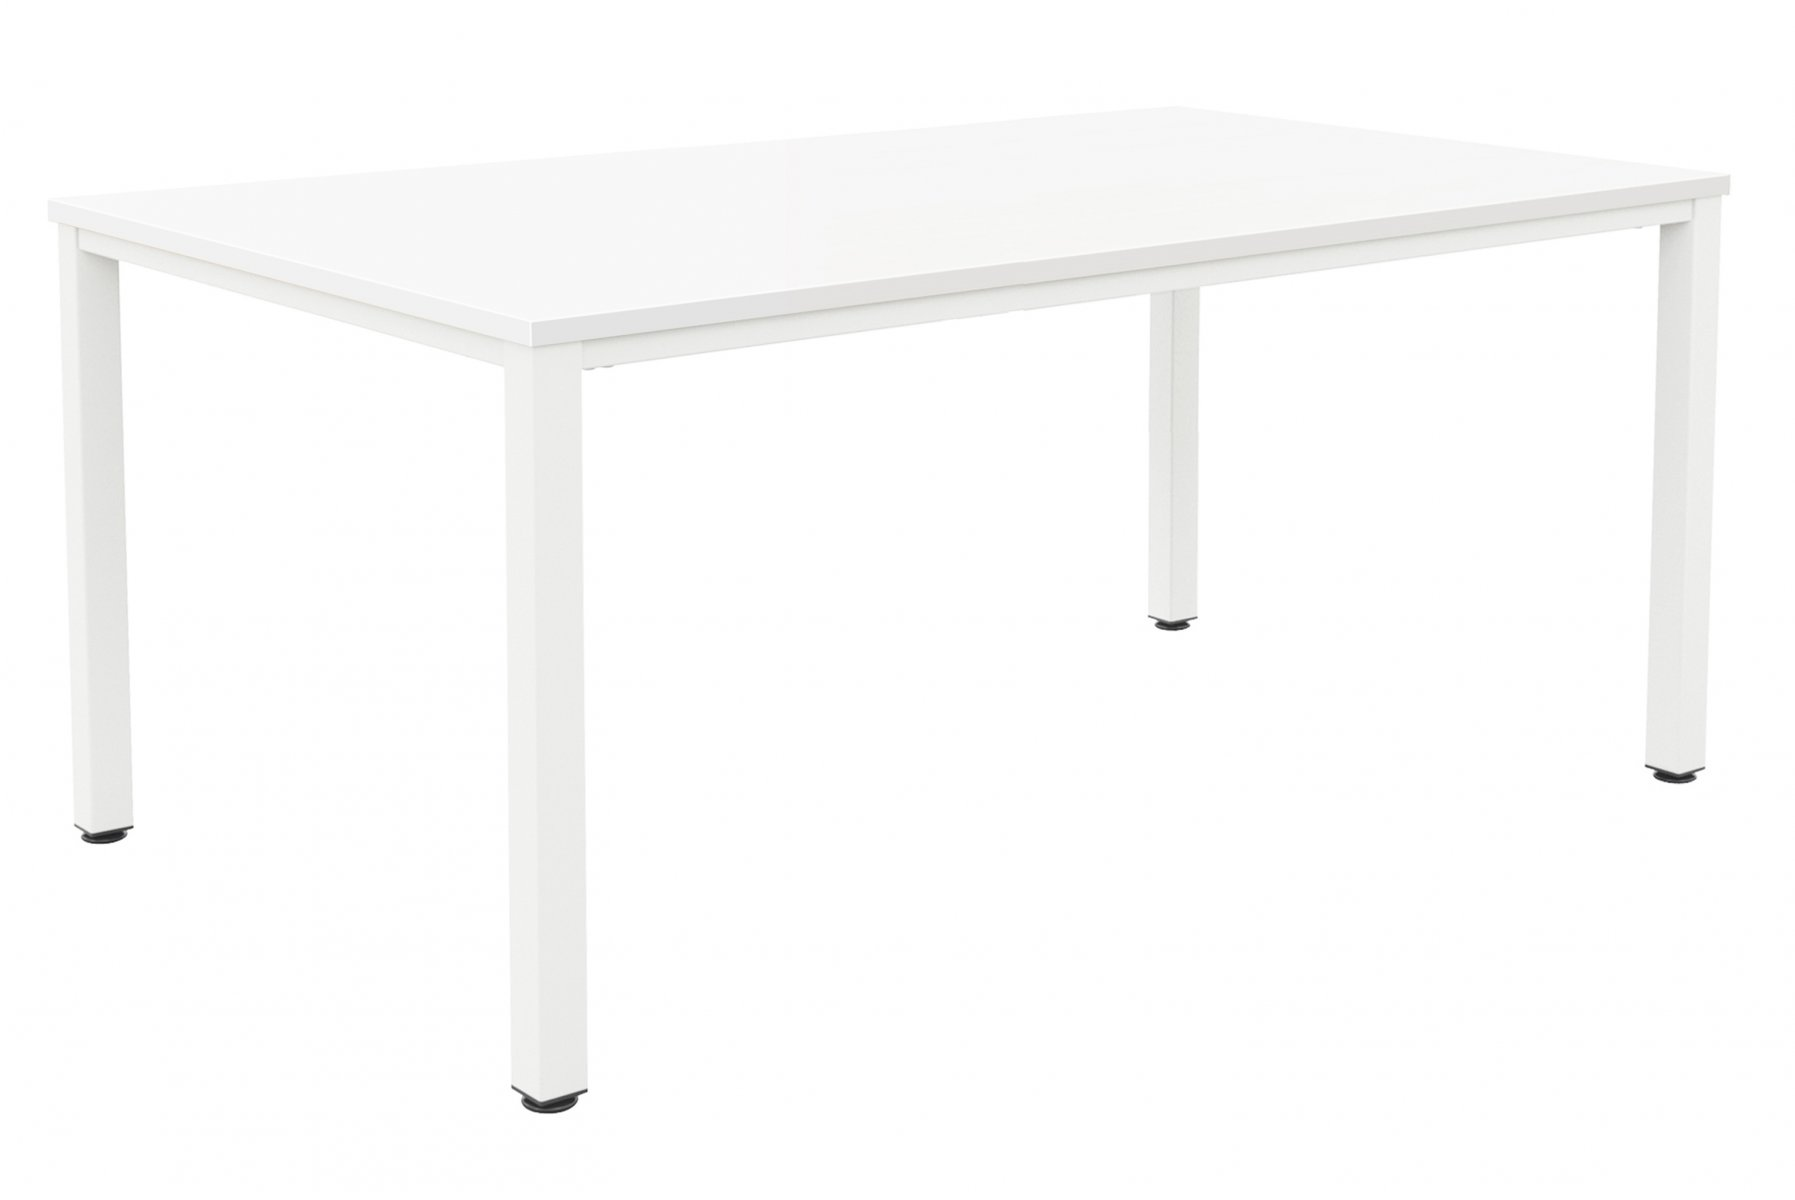 Fraction Infinity 160 x 80 Meeting Table - White with White Legs